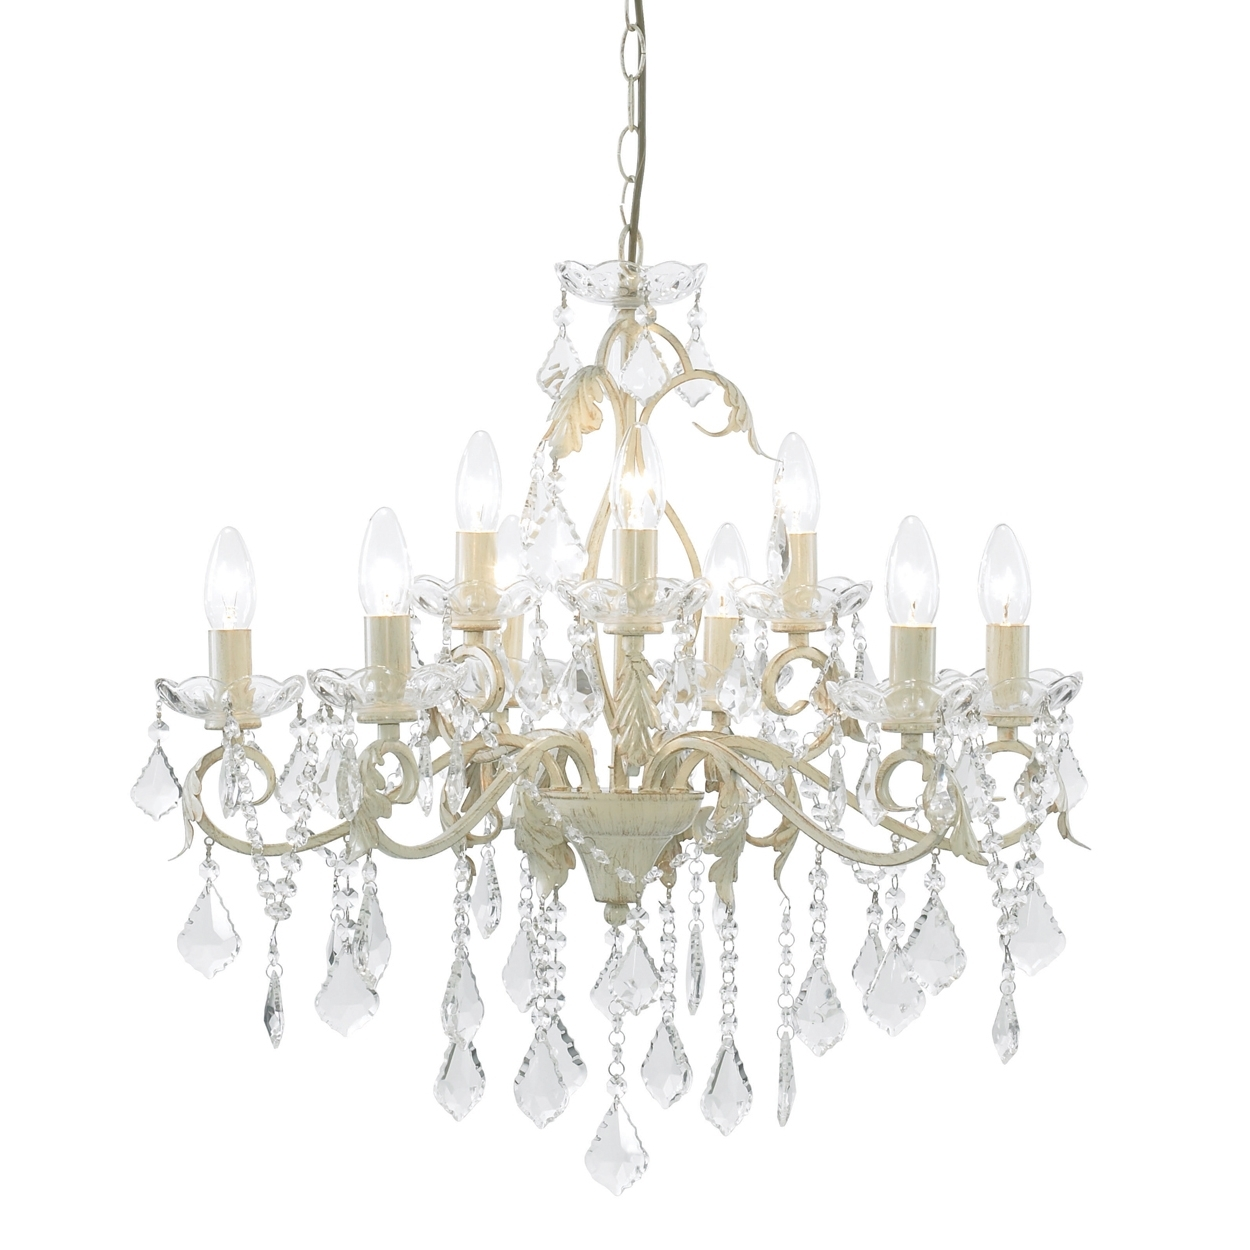 Widely Used Cream Chandeliers Intended For Chandeliers Design : Magnificent Cream And Gold Crystal Chandelier (View 7 of 20)